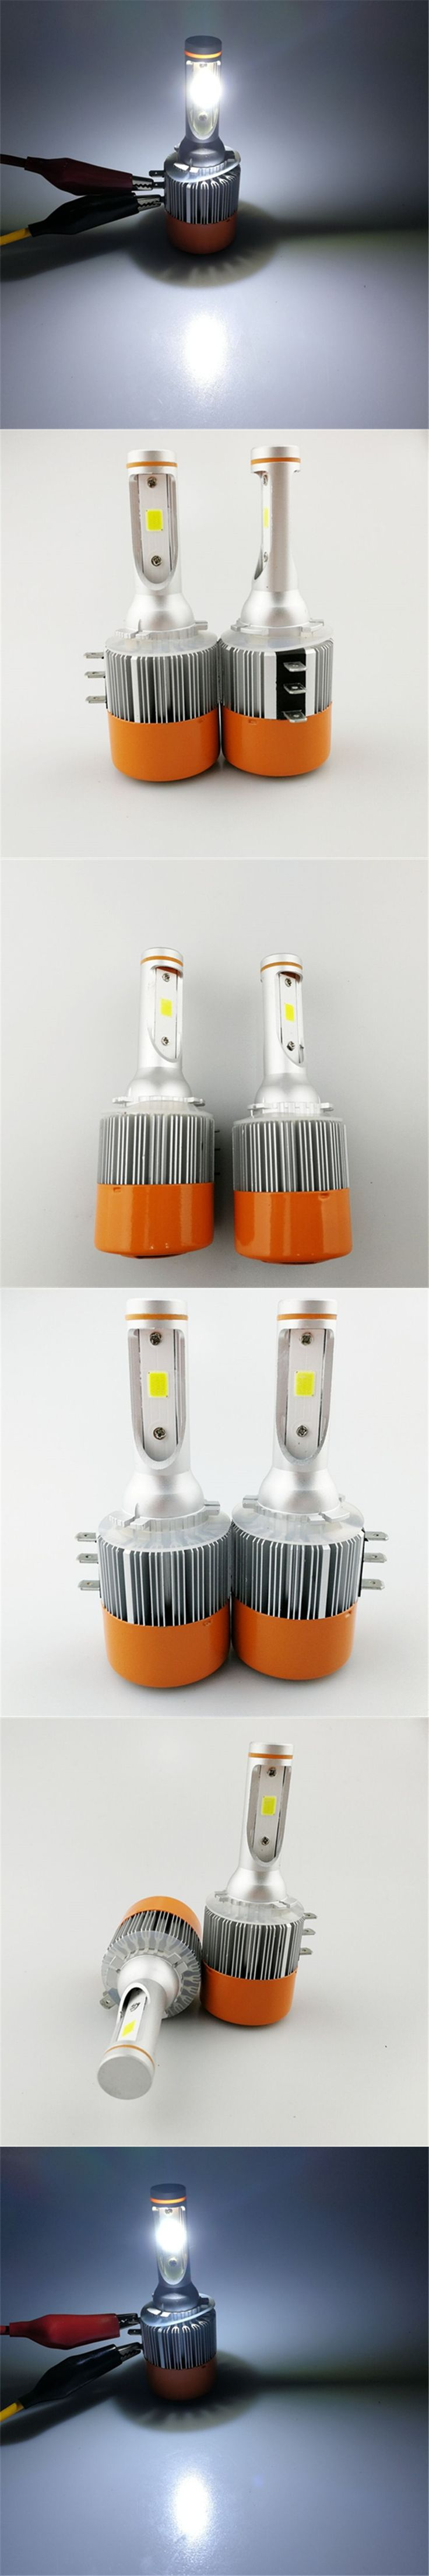 Hoping 2pcs H15 72W 7600Lm Wireless Led Car Headlight Lamp  Driving Bulb DRL Car Light Source For Golf  bmw ford volkswagen